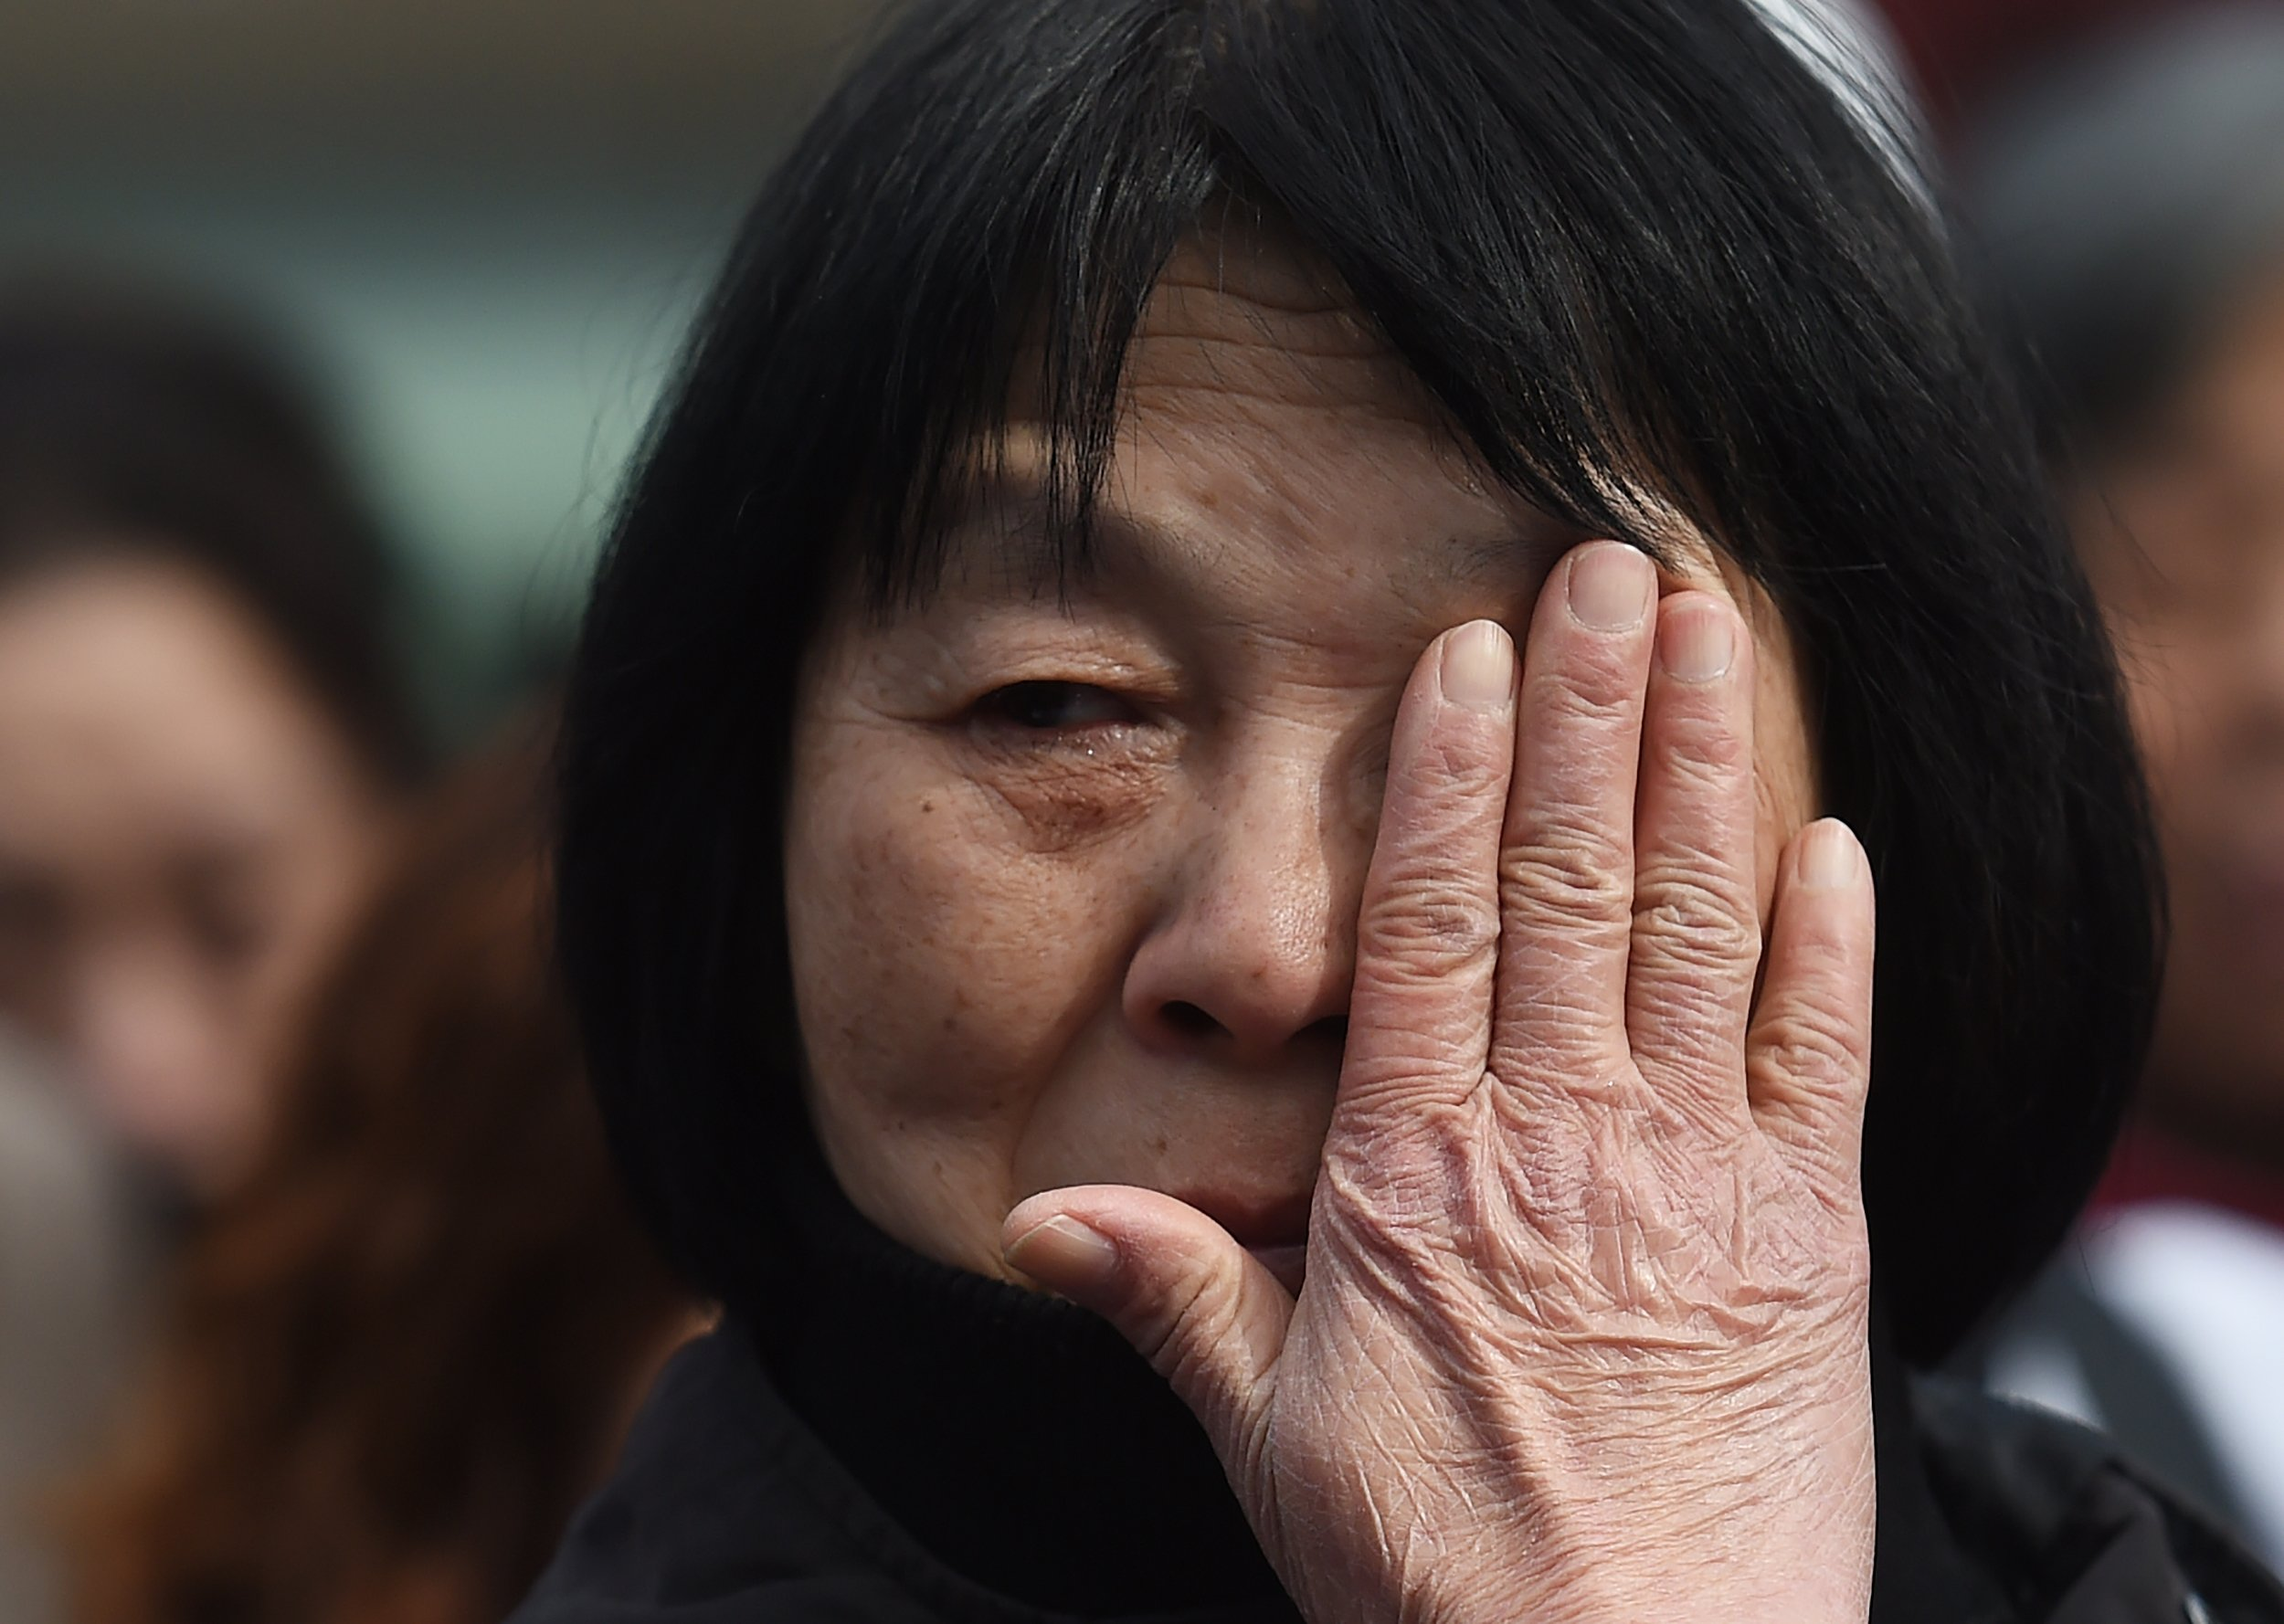 Dai Shuqin, a relative of passengers missing on Malaysia Airlines MH370, wipes her tears during a gathering of relatives outside the Lama Temple in Beijing on March 8, 2016 (GREG BAKER/AFP/Getty Images)